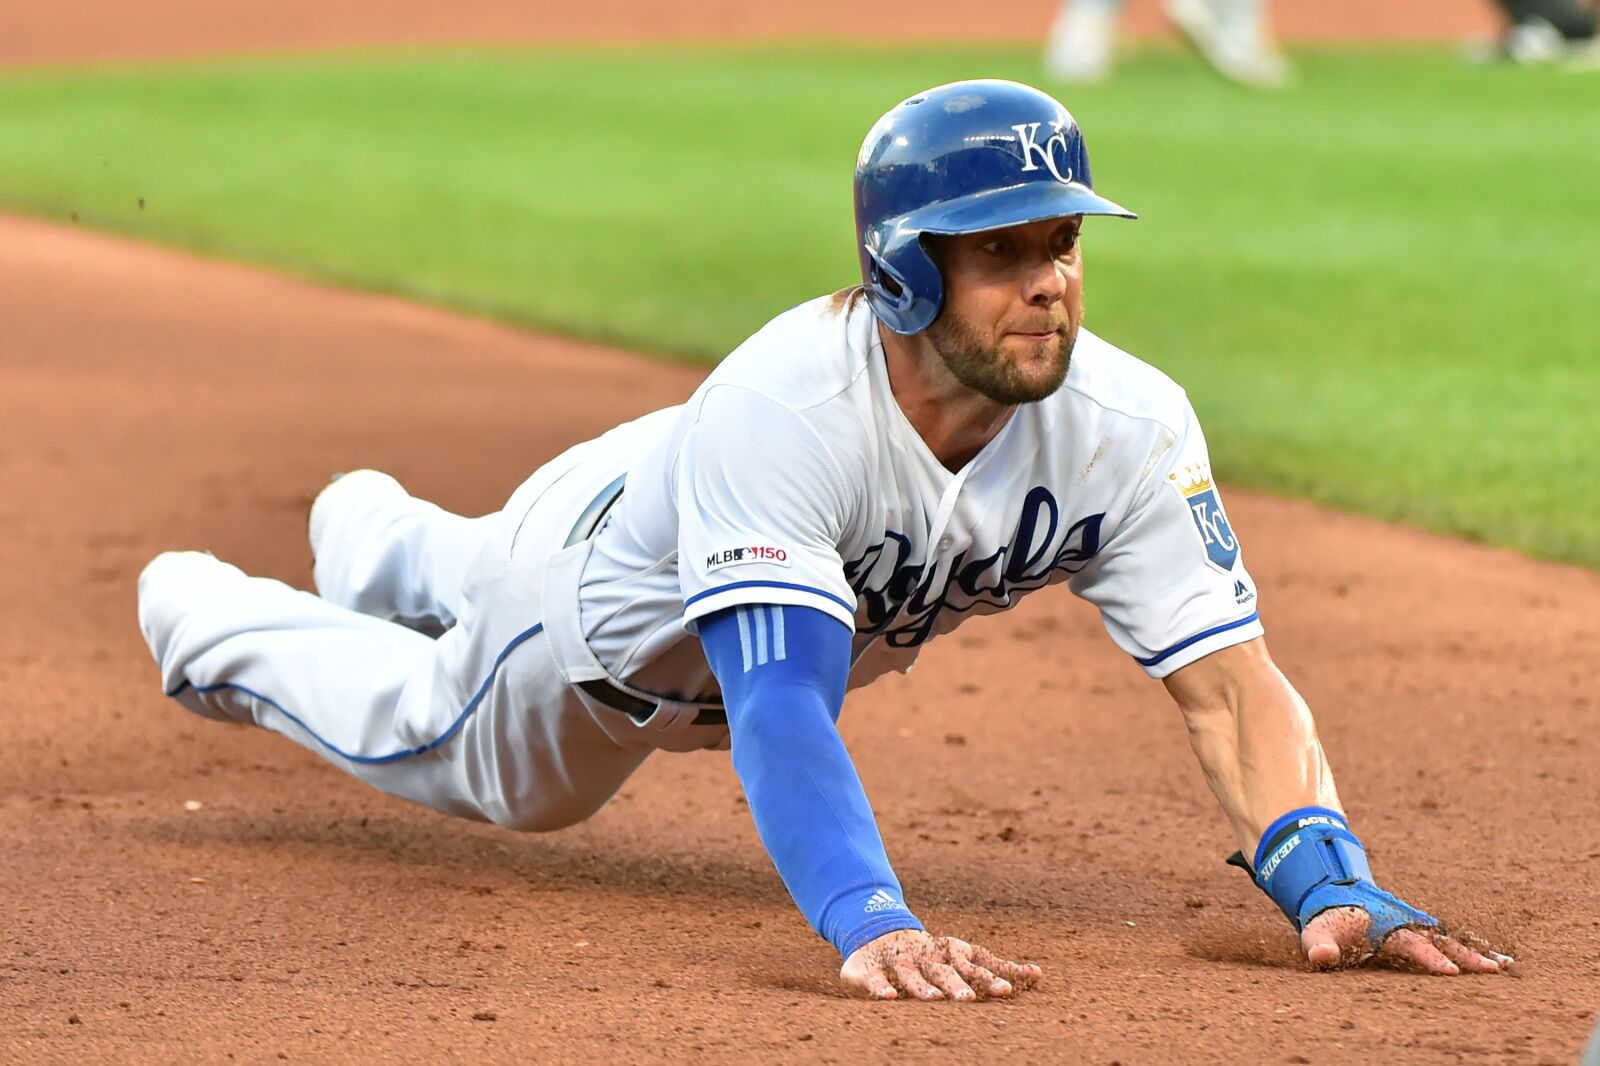 Kansas City Royals: Alex Gordon has options this offseason